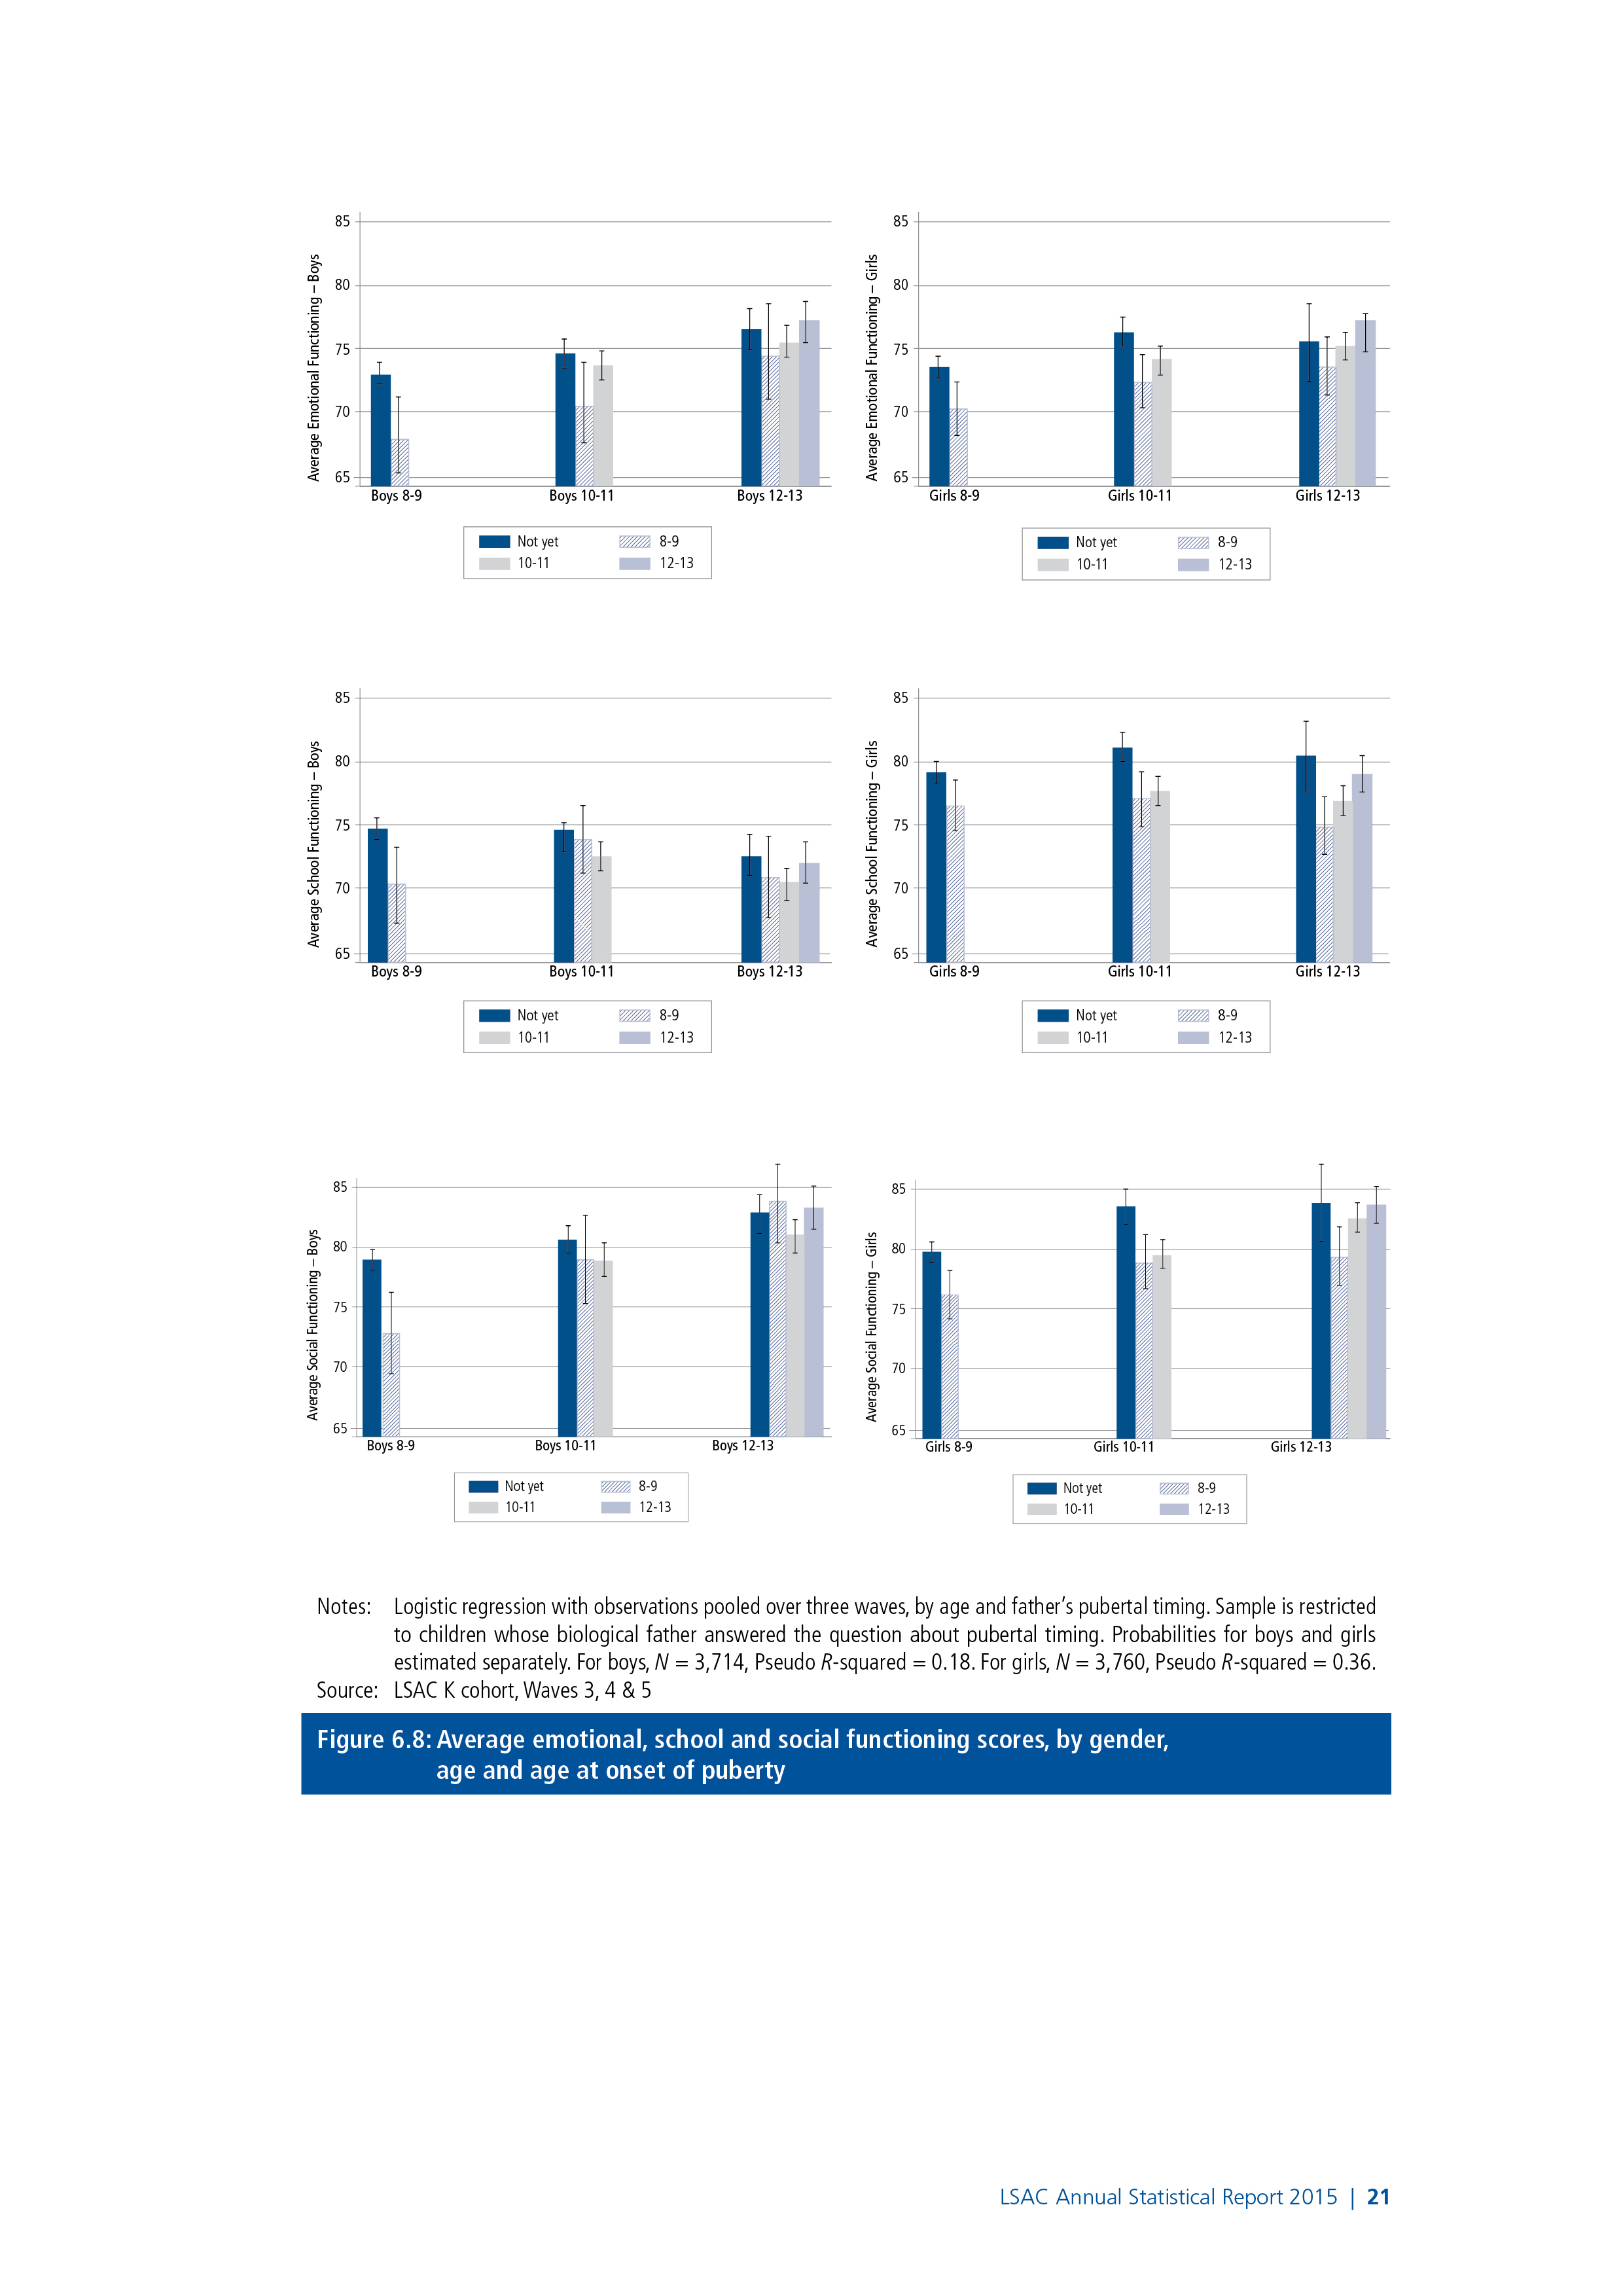 Figure 6.8: Average emotional, school and social functioning scores, by gender, age and age at onset of puberty